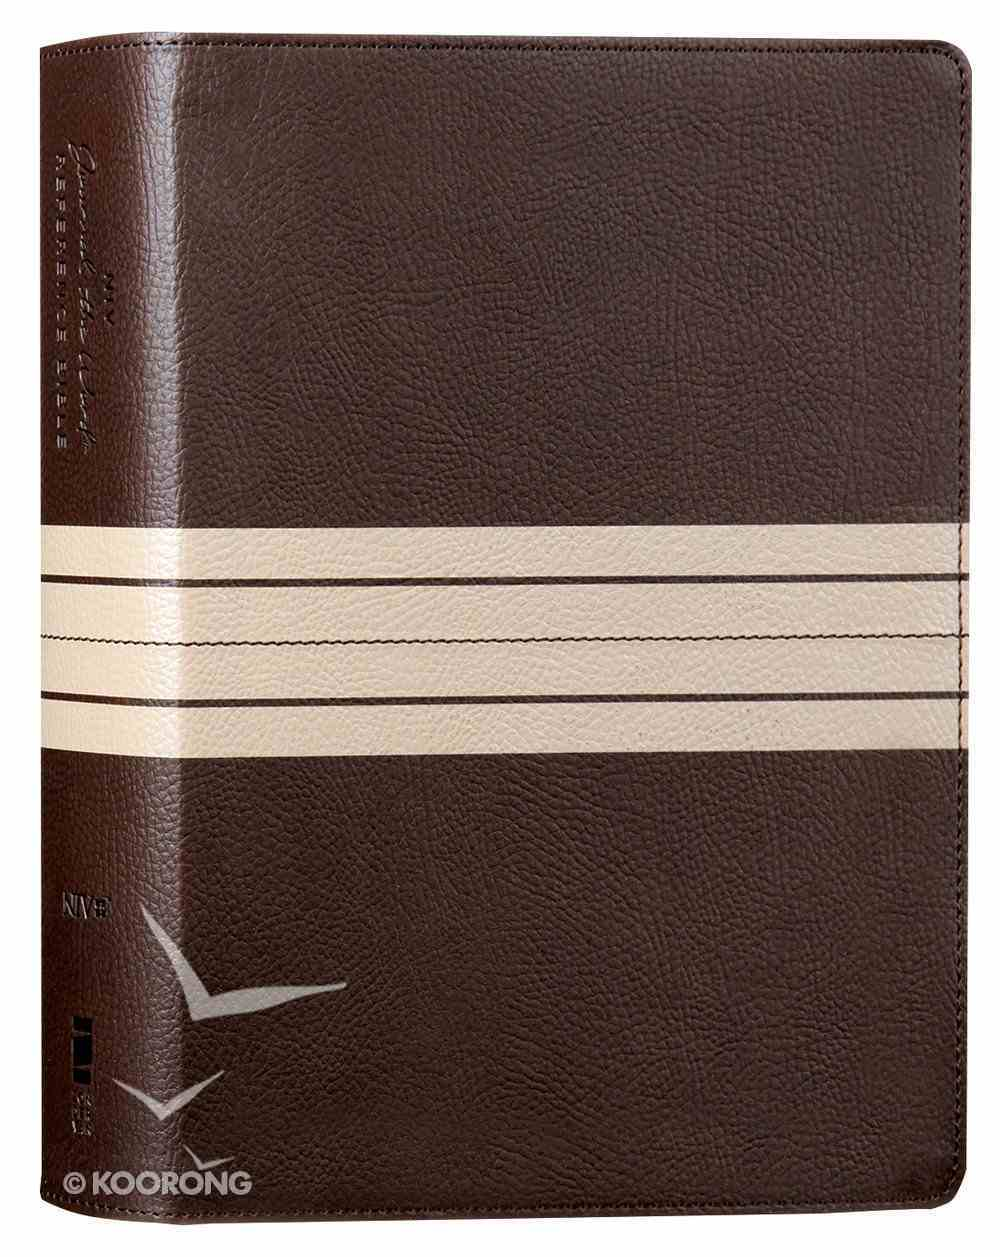 NIV Journal the Word Reference Bible Brown/Tan (Red Letter Edition) Premium Imitation Leather